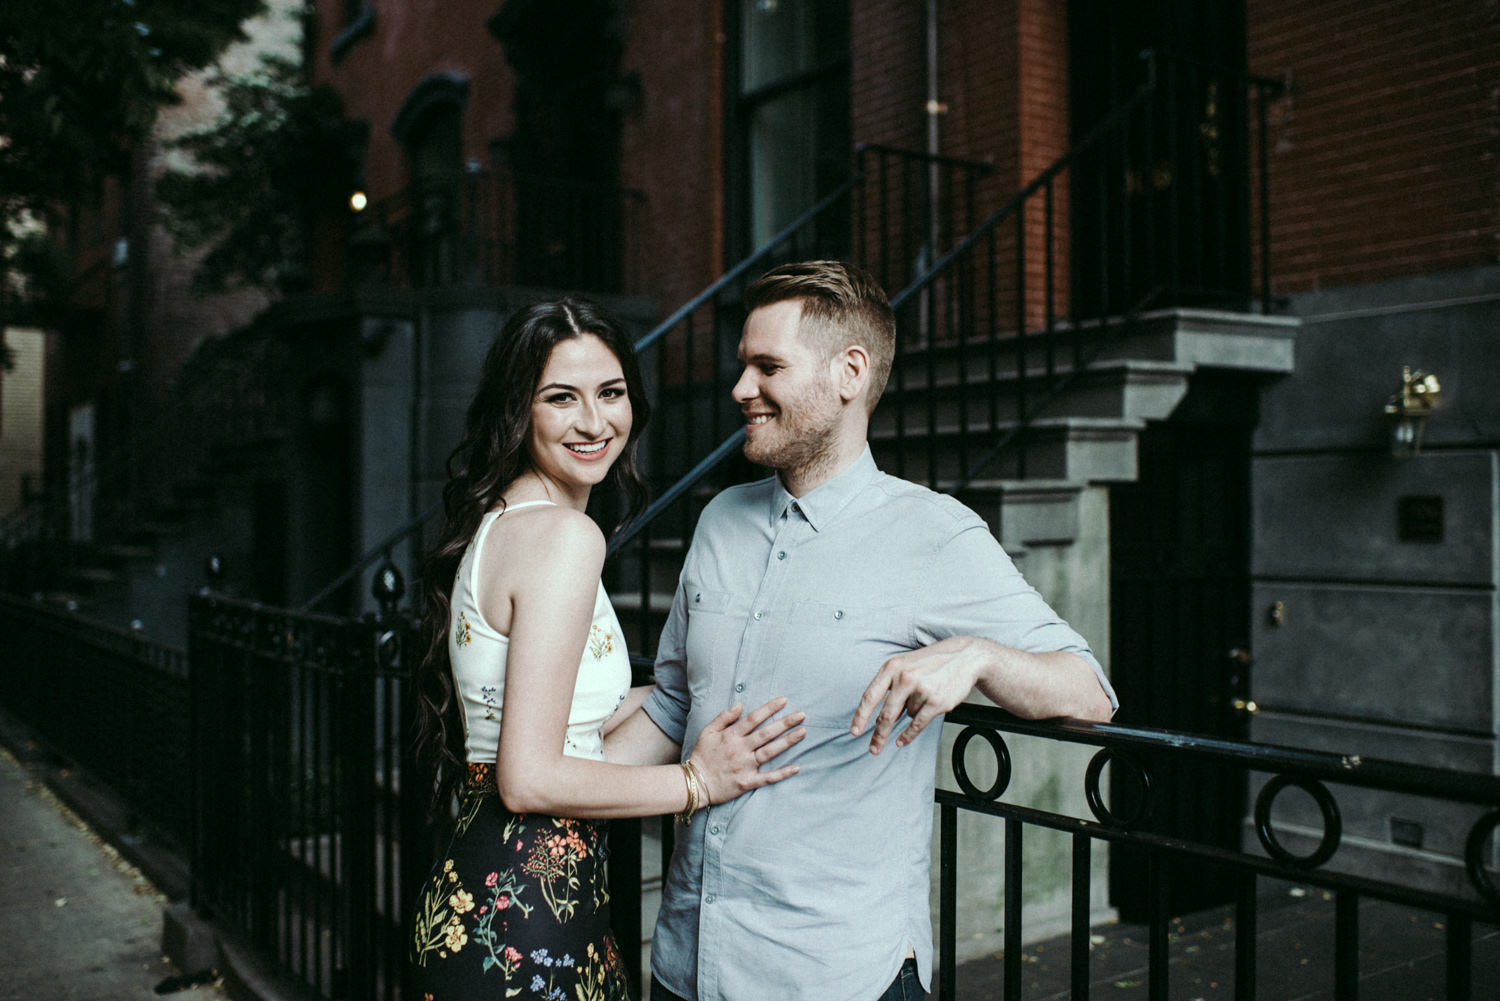 new-york-elopement-engagement-pictures-giancarlo-photography-32.jpg